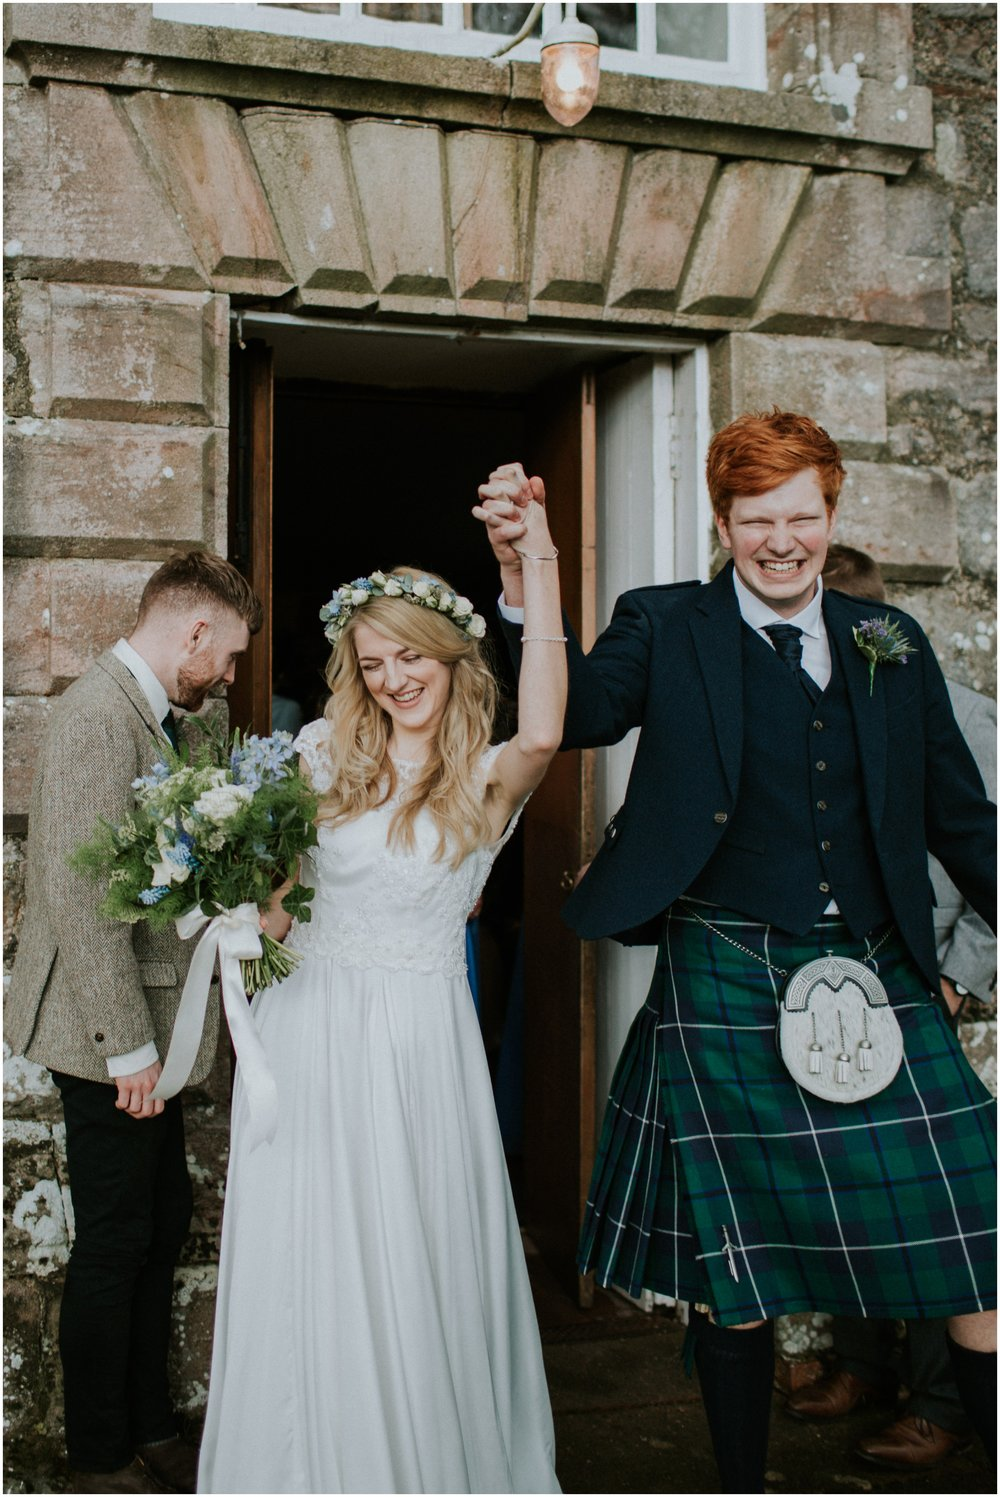 Photography 78 - Glasgow Wedding Photographer - Dave & Alana_0044.jpg